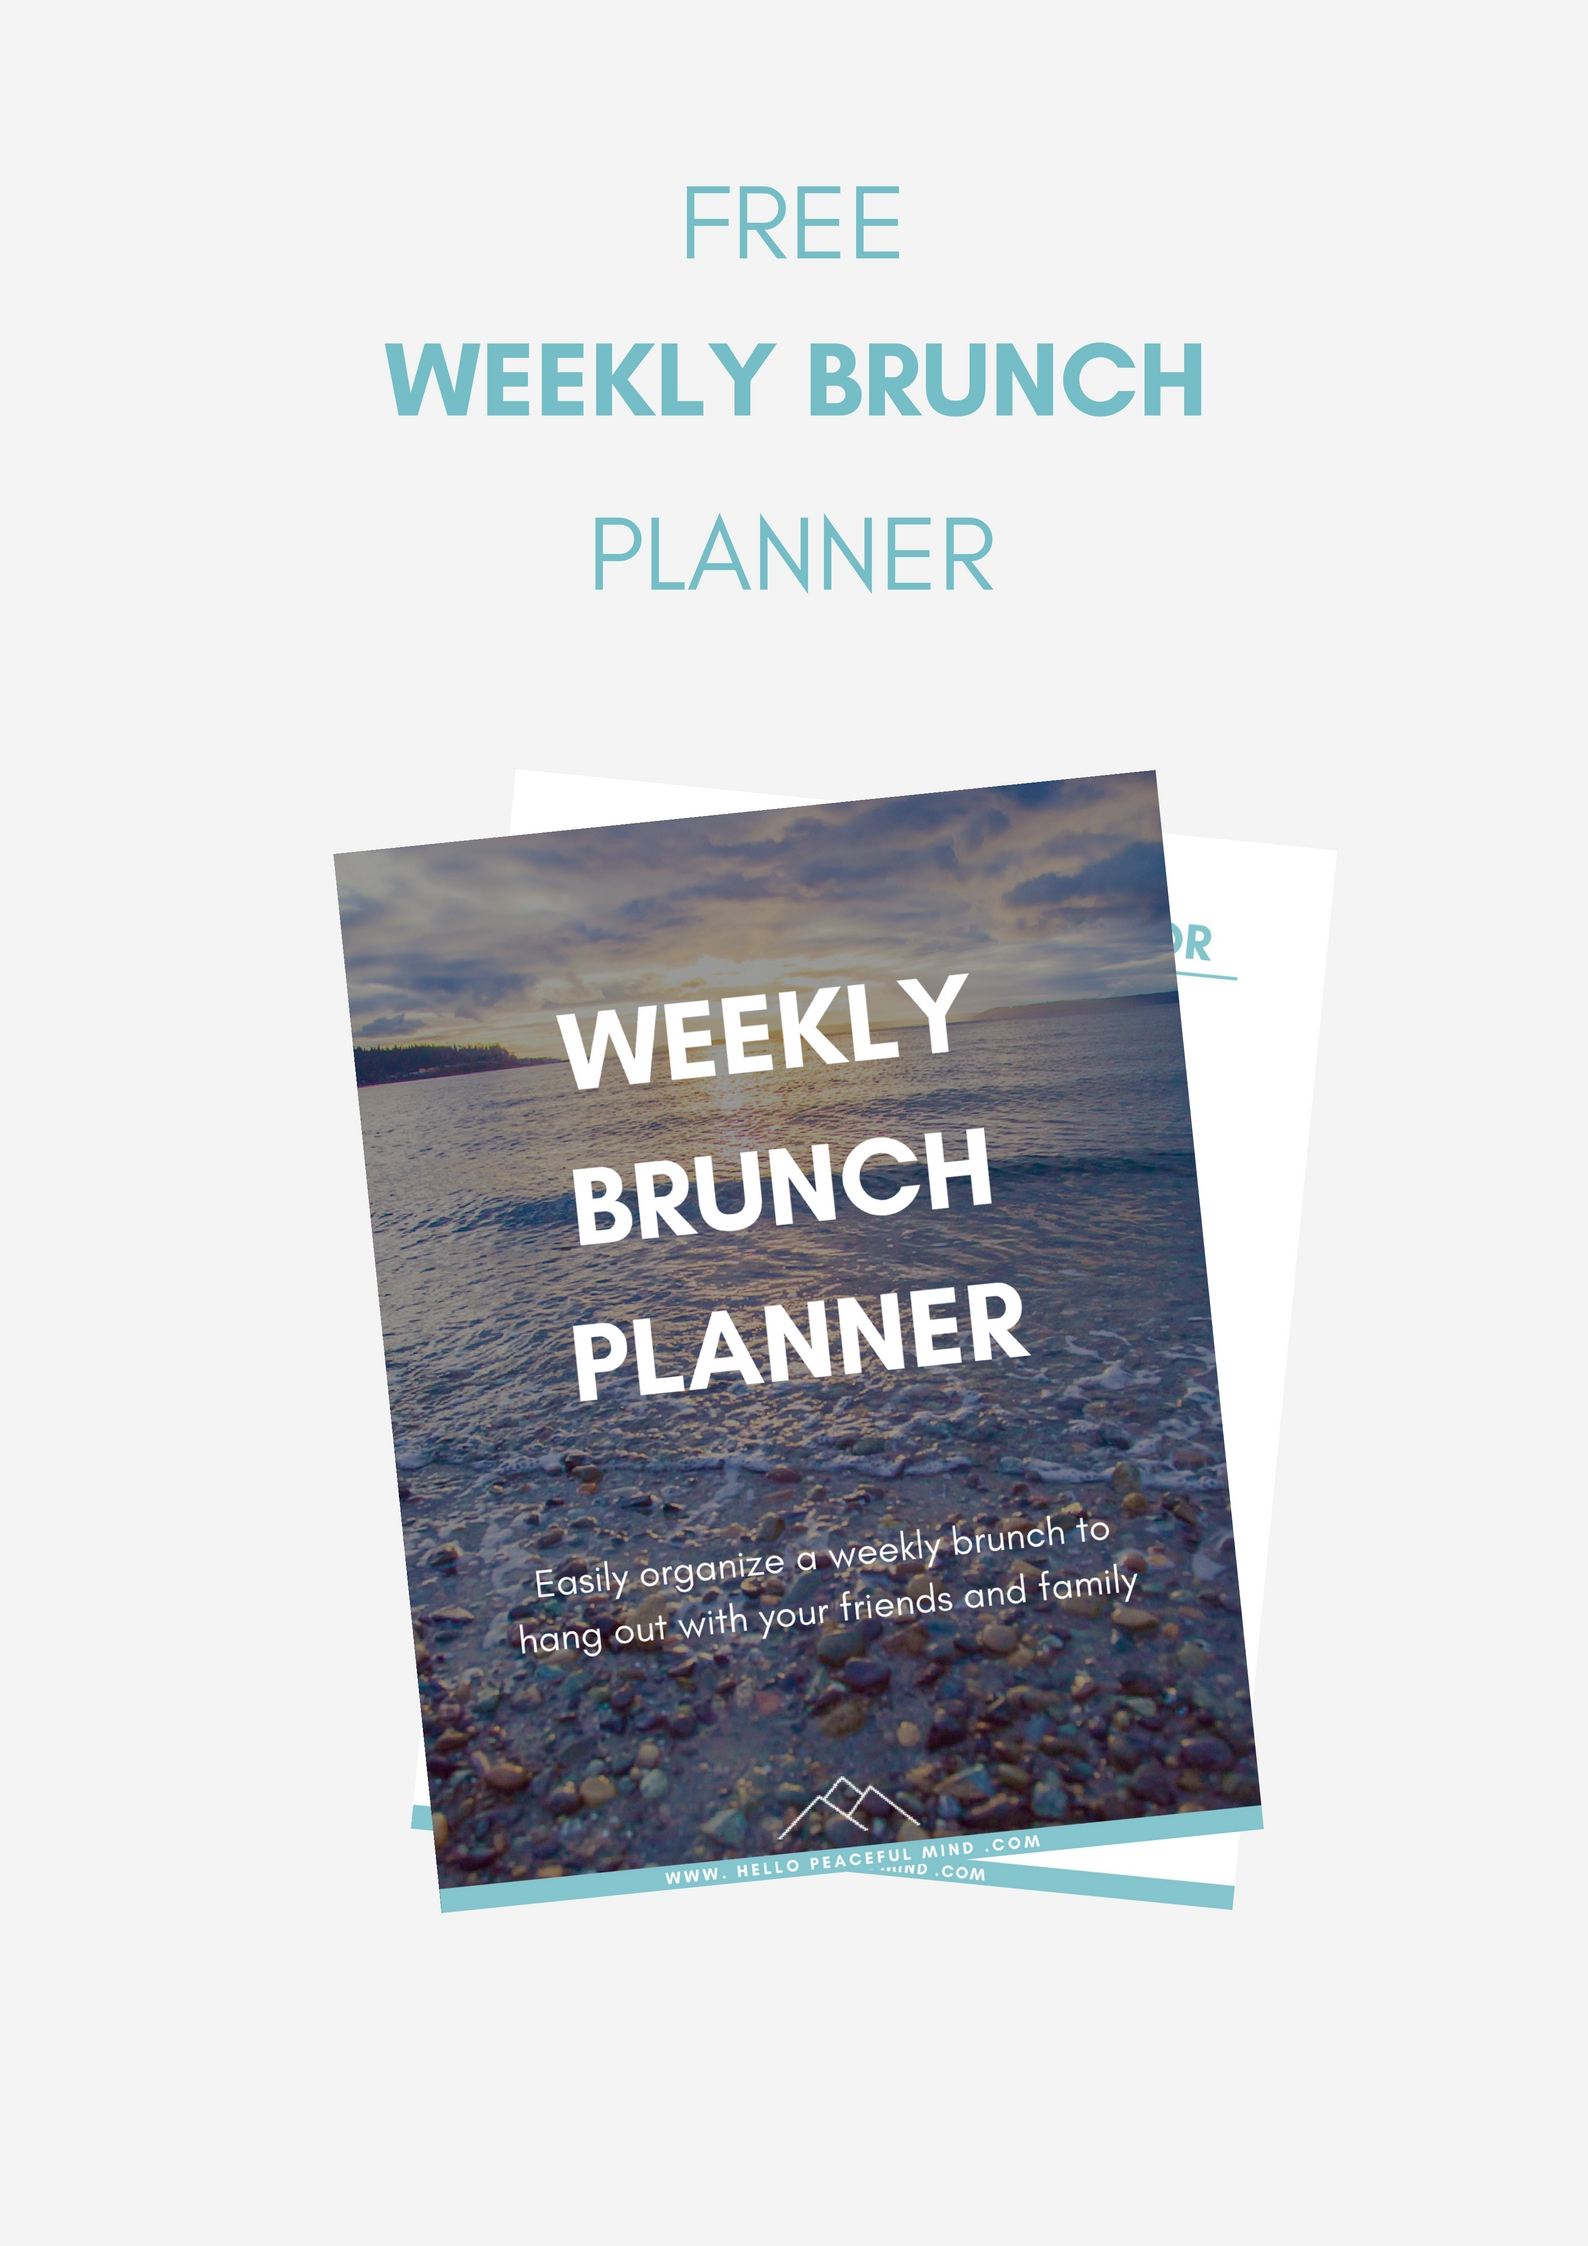 Download your FREE weekly brunch planner to help you hang out with your friends and family more often! Go to www.HelloPeacefulMind.com